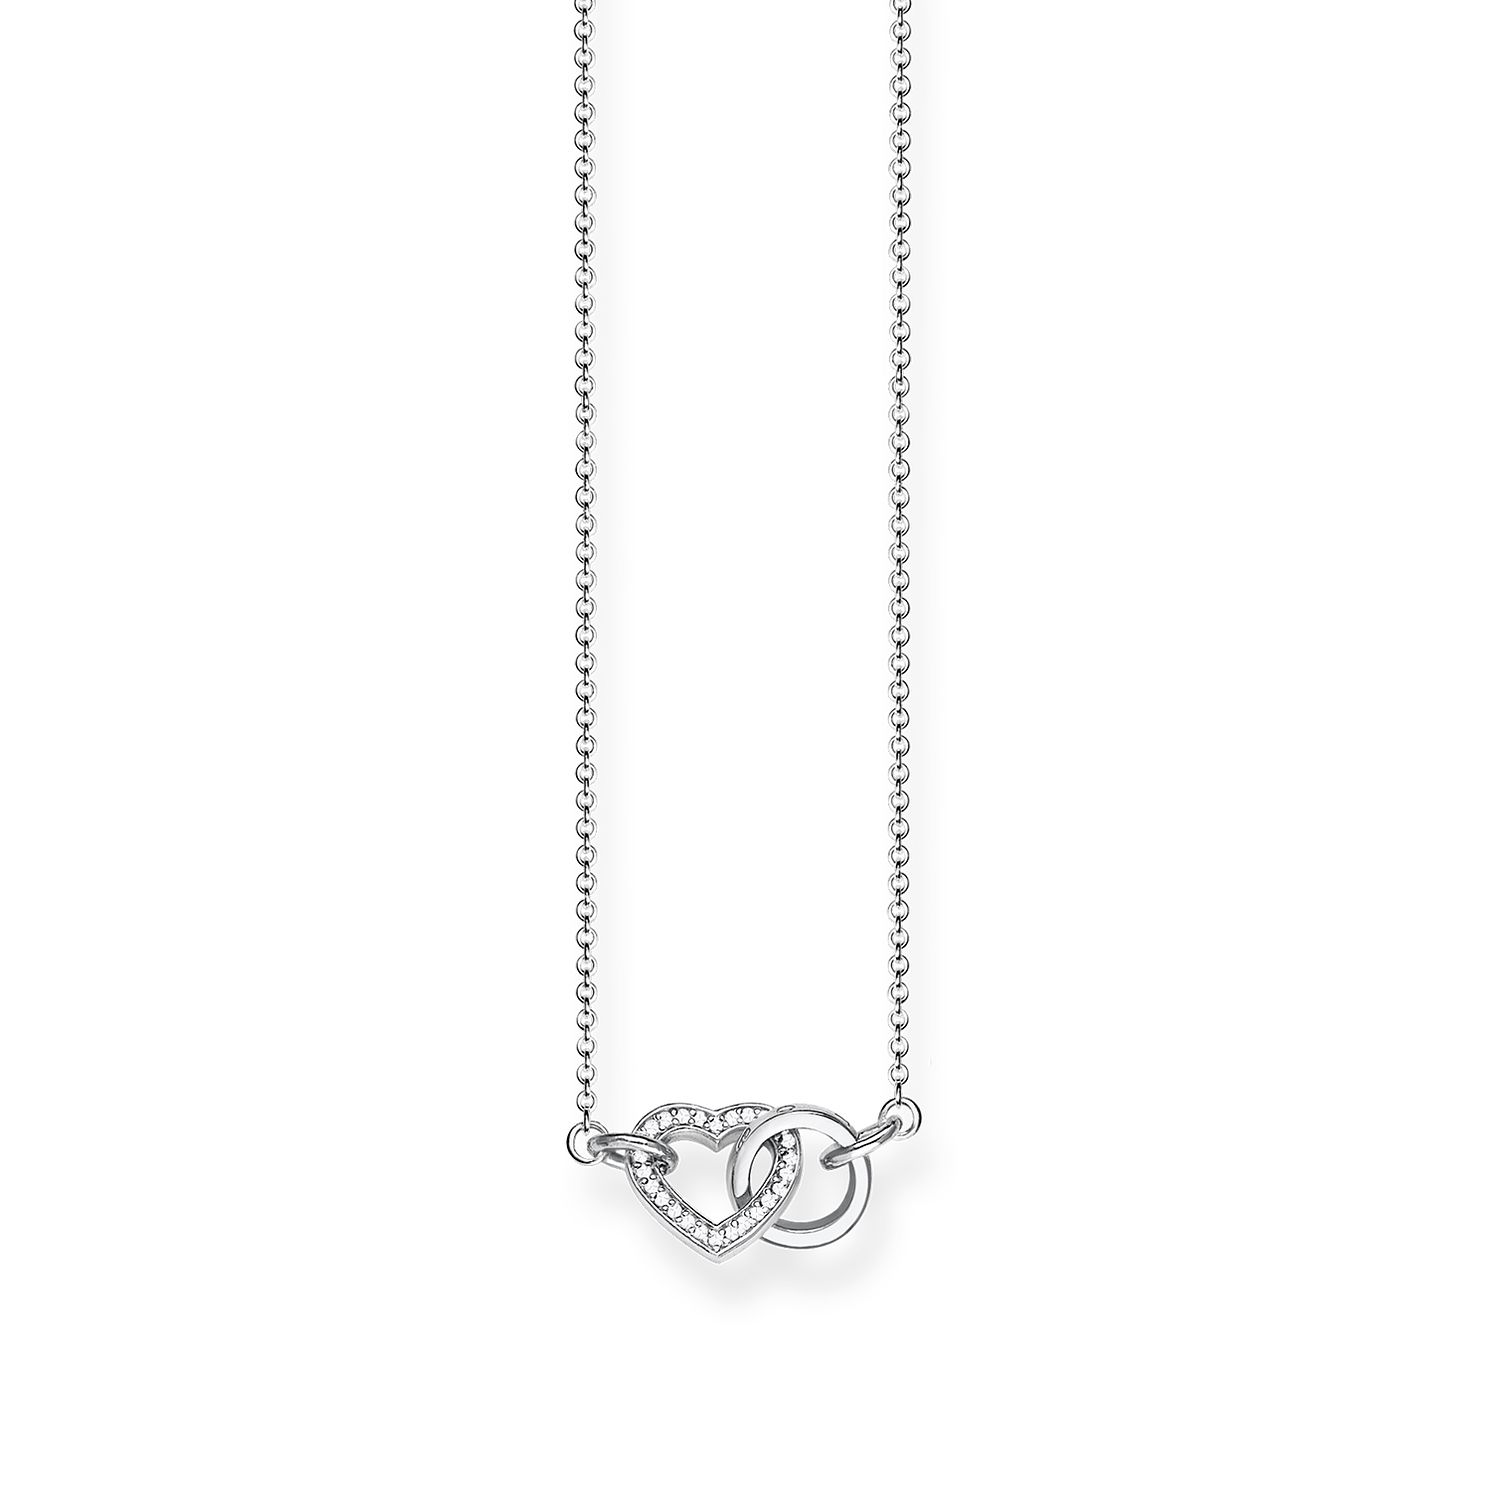 Thomas Sabo Together Sterling Silver Stone Set Necklace - Product number 8227101